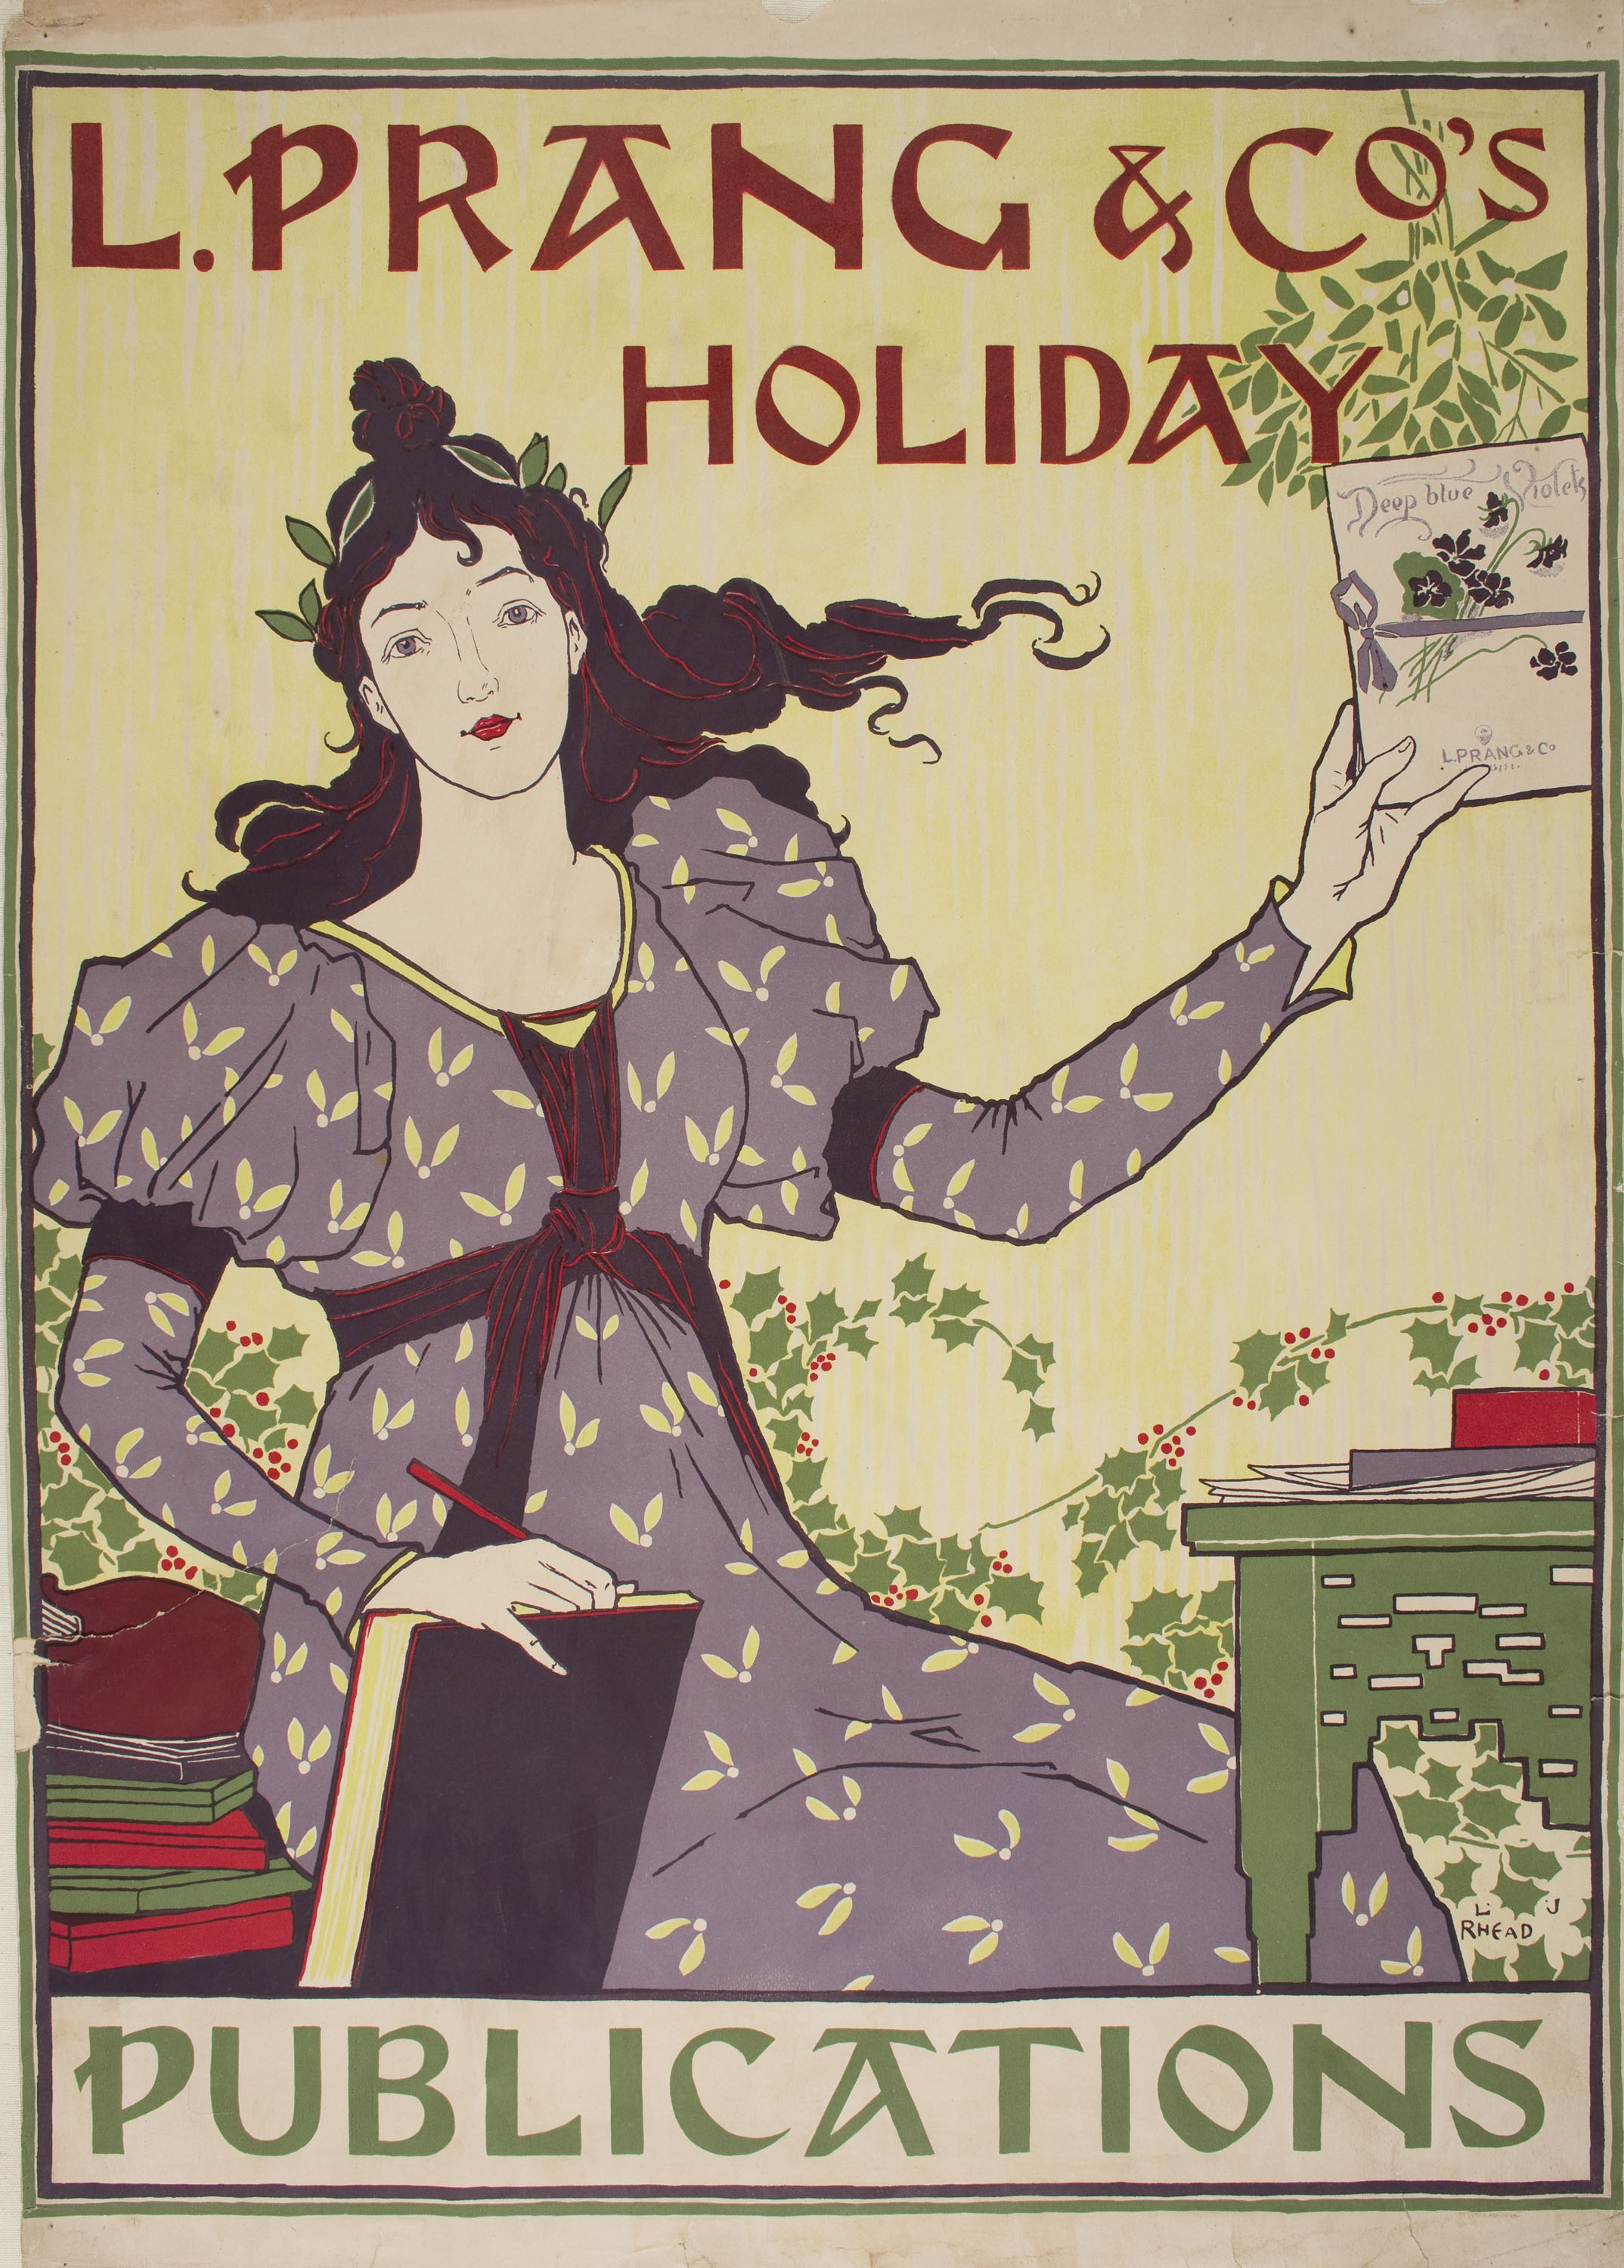 Louis John Rhead - L. Prang & Co's. Holiday Publications - 1895